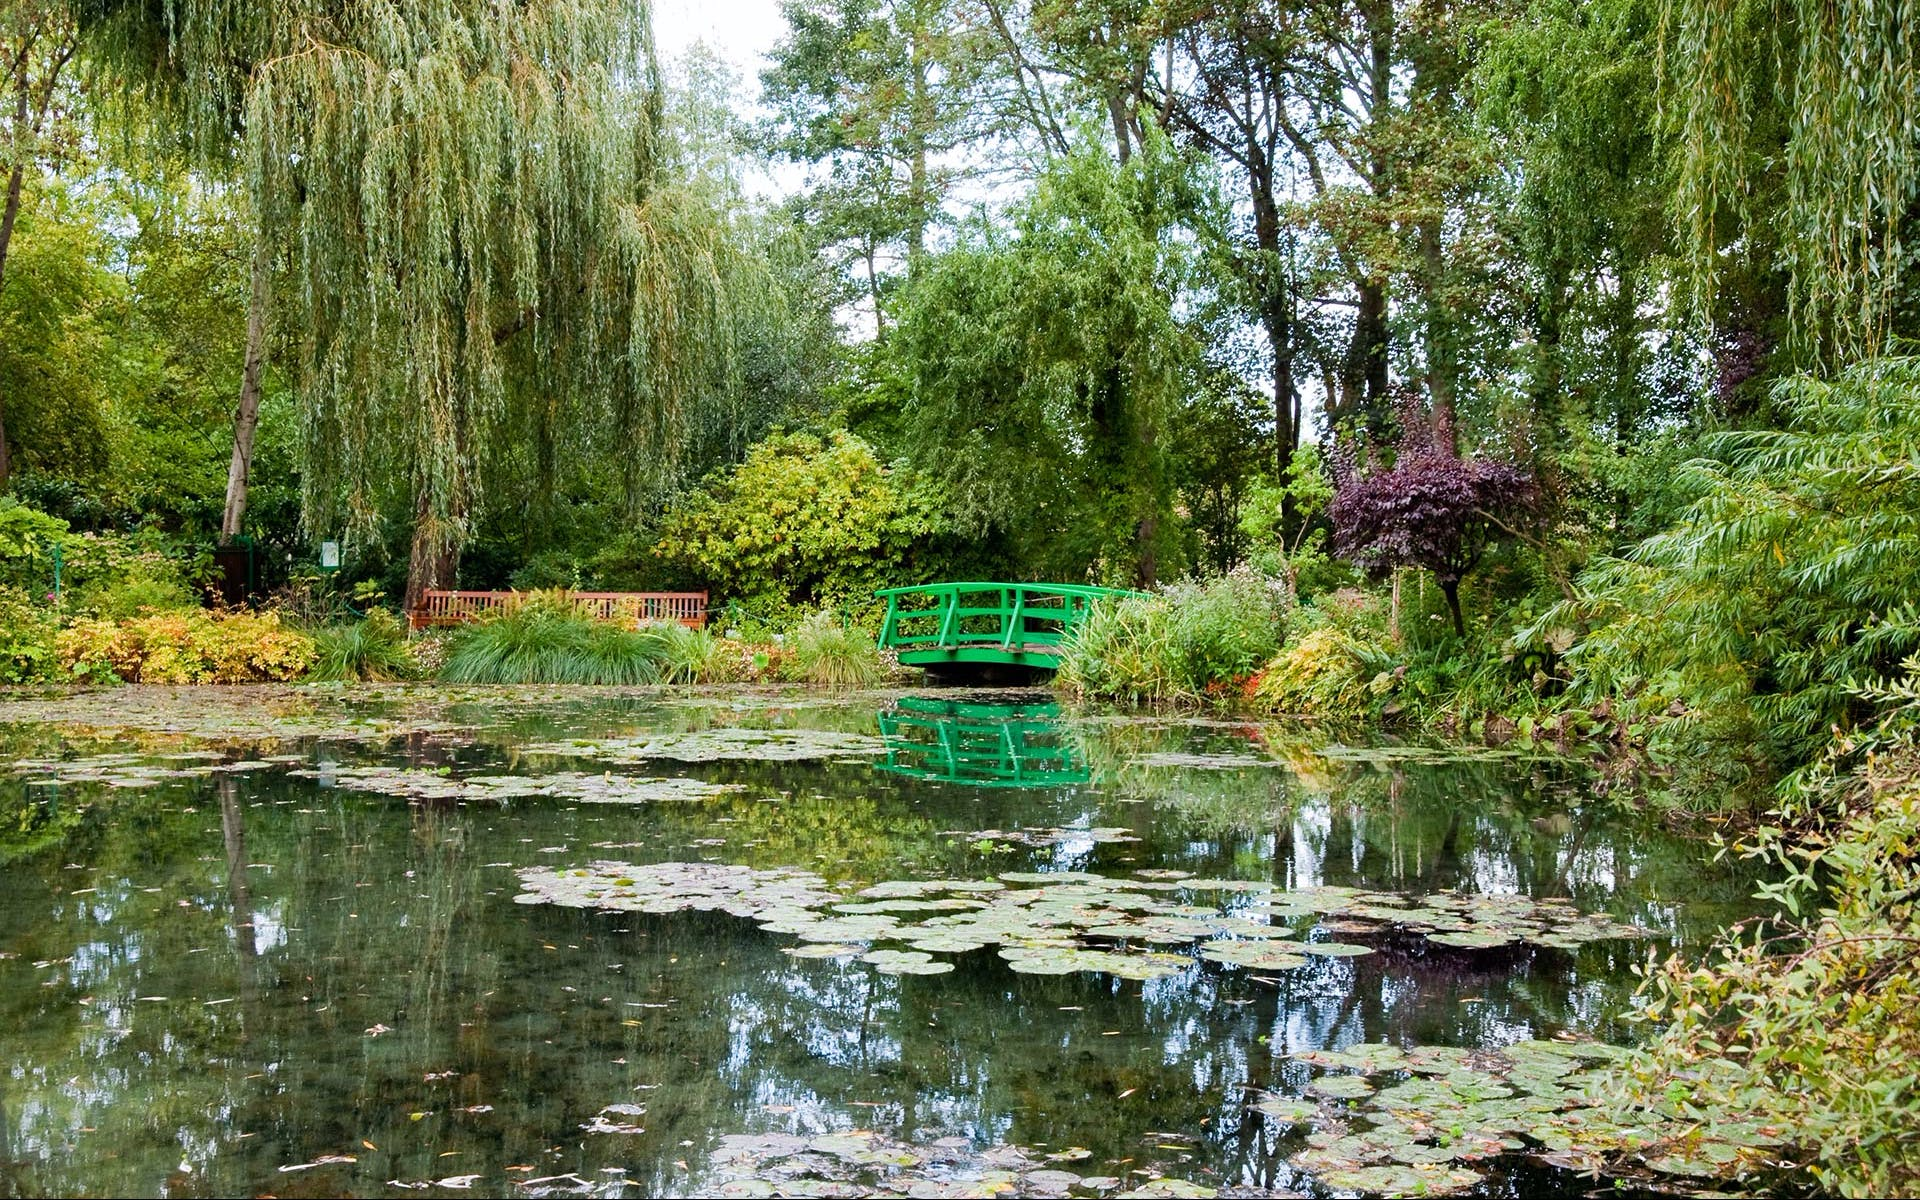 paris to normandy - giverny - monet's garden